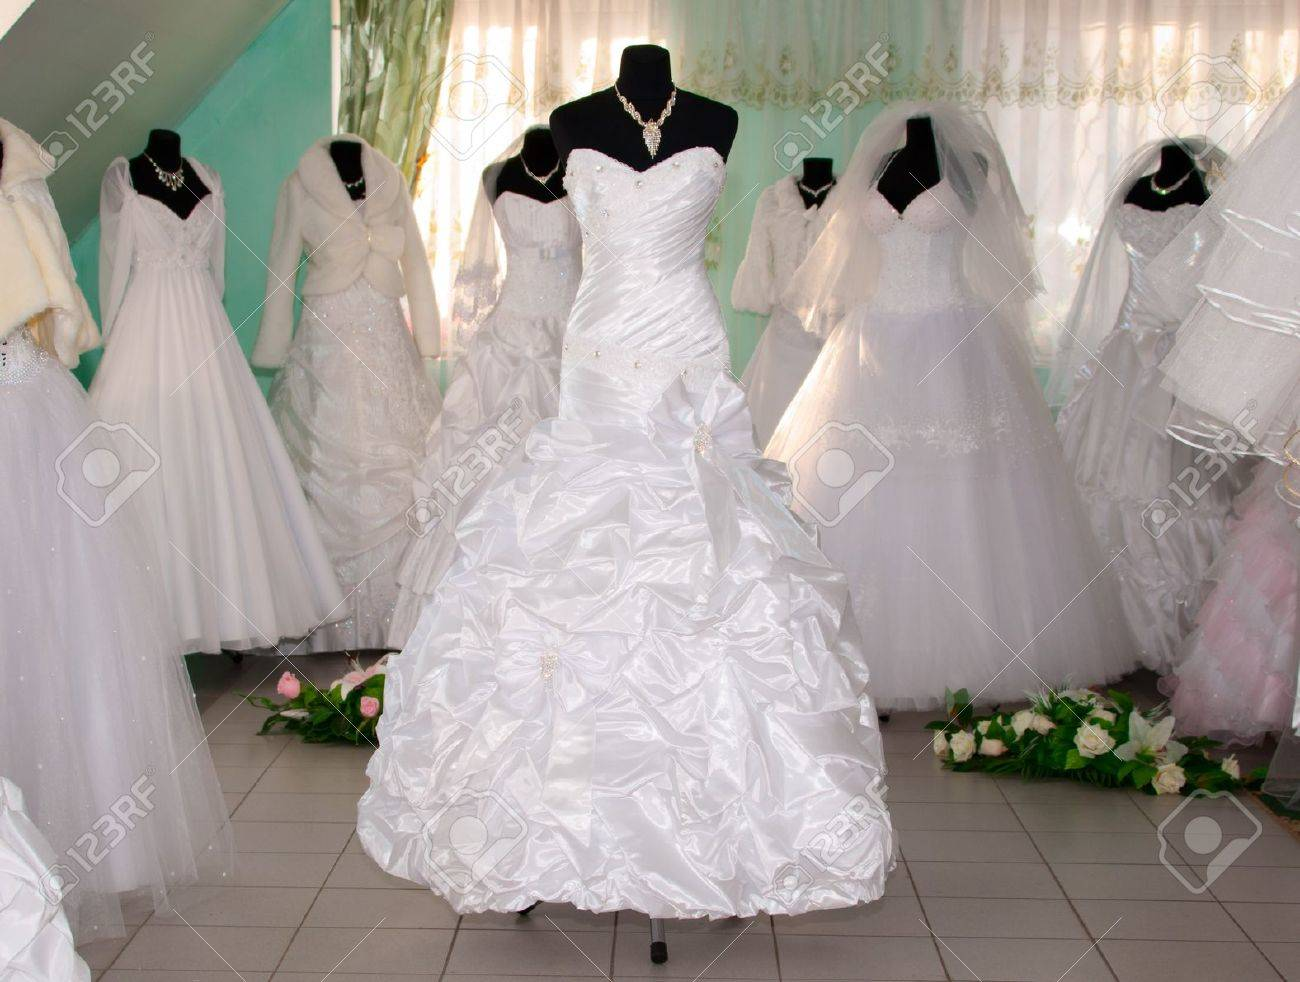 Some Wedding Dress\'s In A Dress Shop Stock Photo, Picture And ...